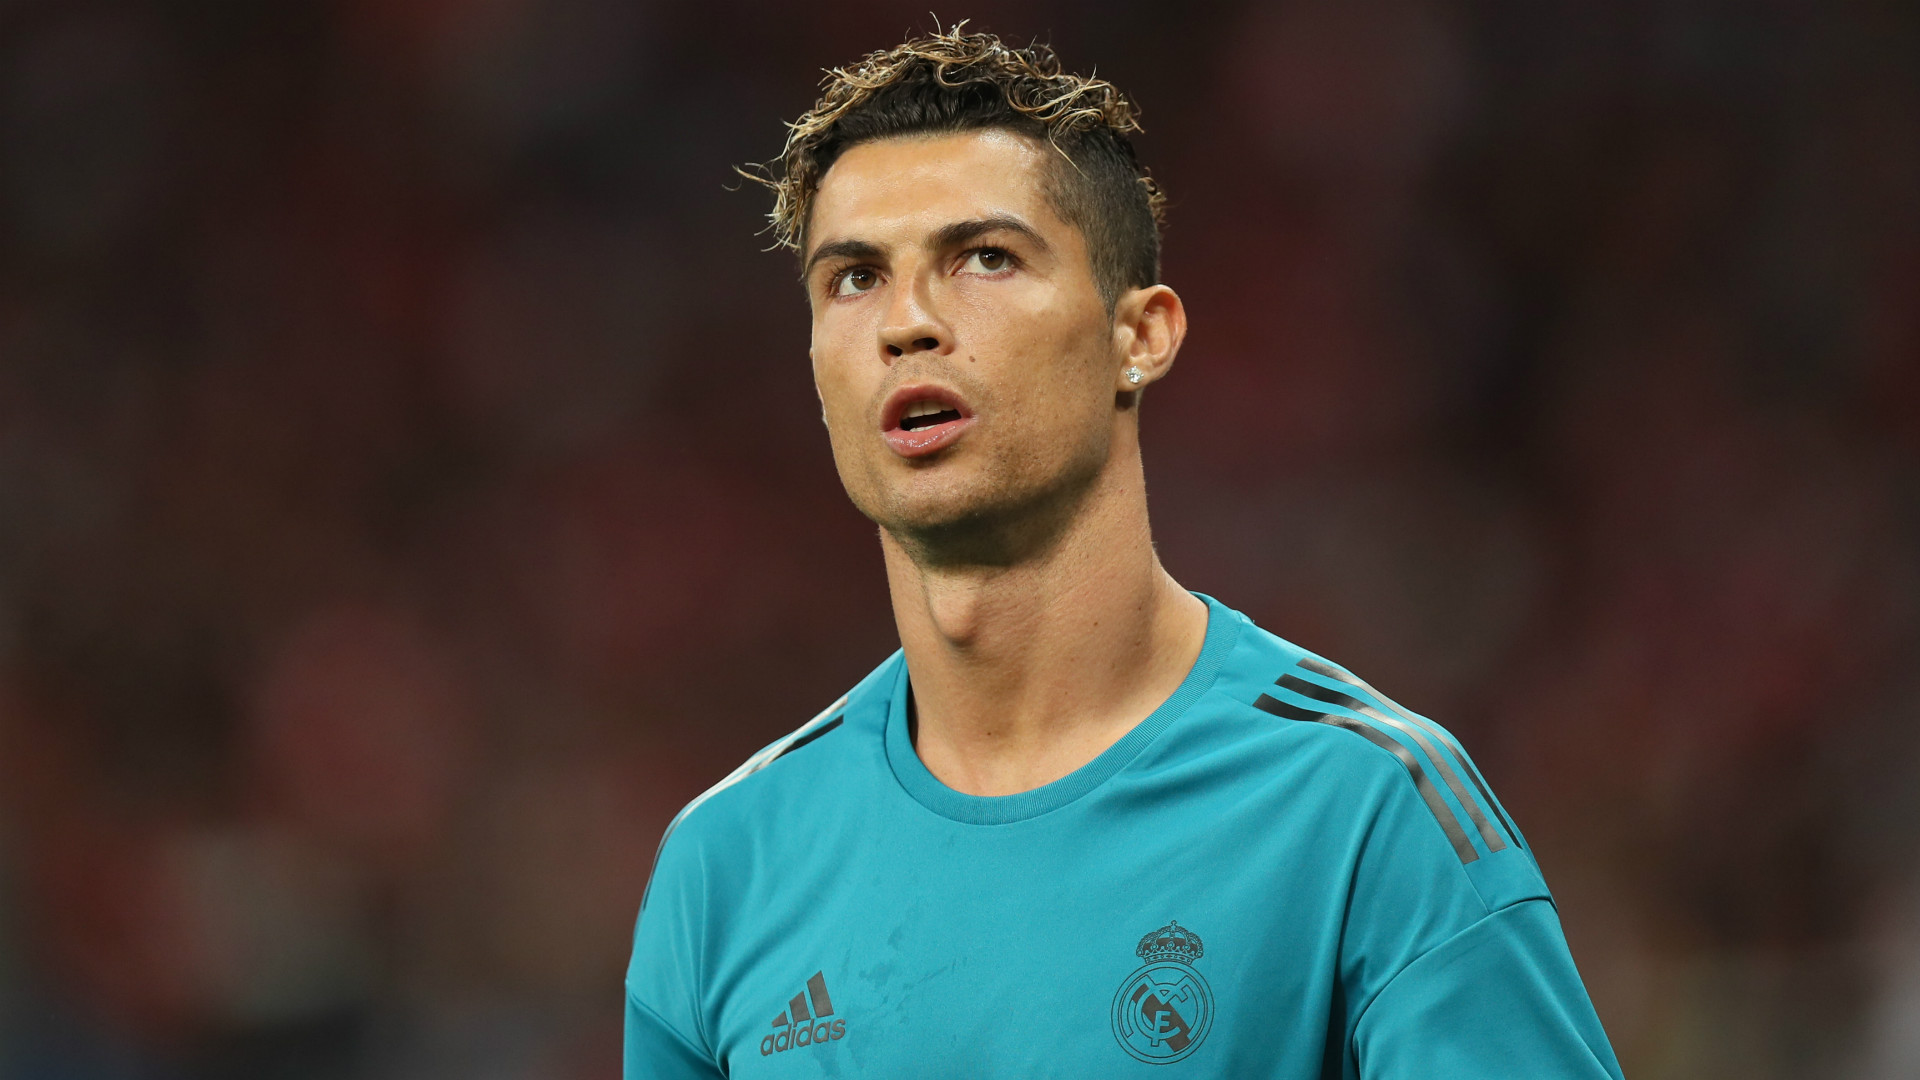 Deal for Ronaldo's transfer to Juventus sealed in Greece